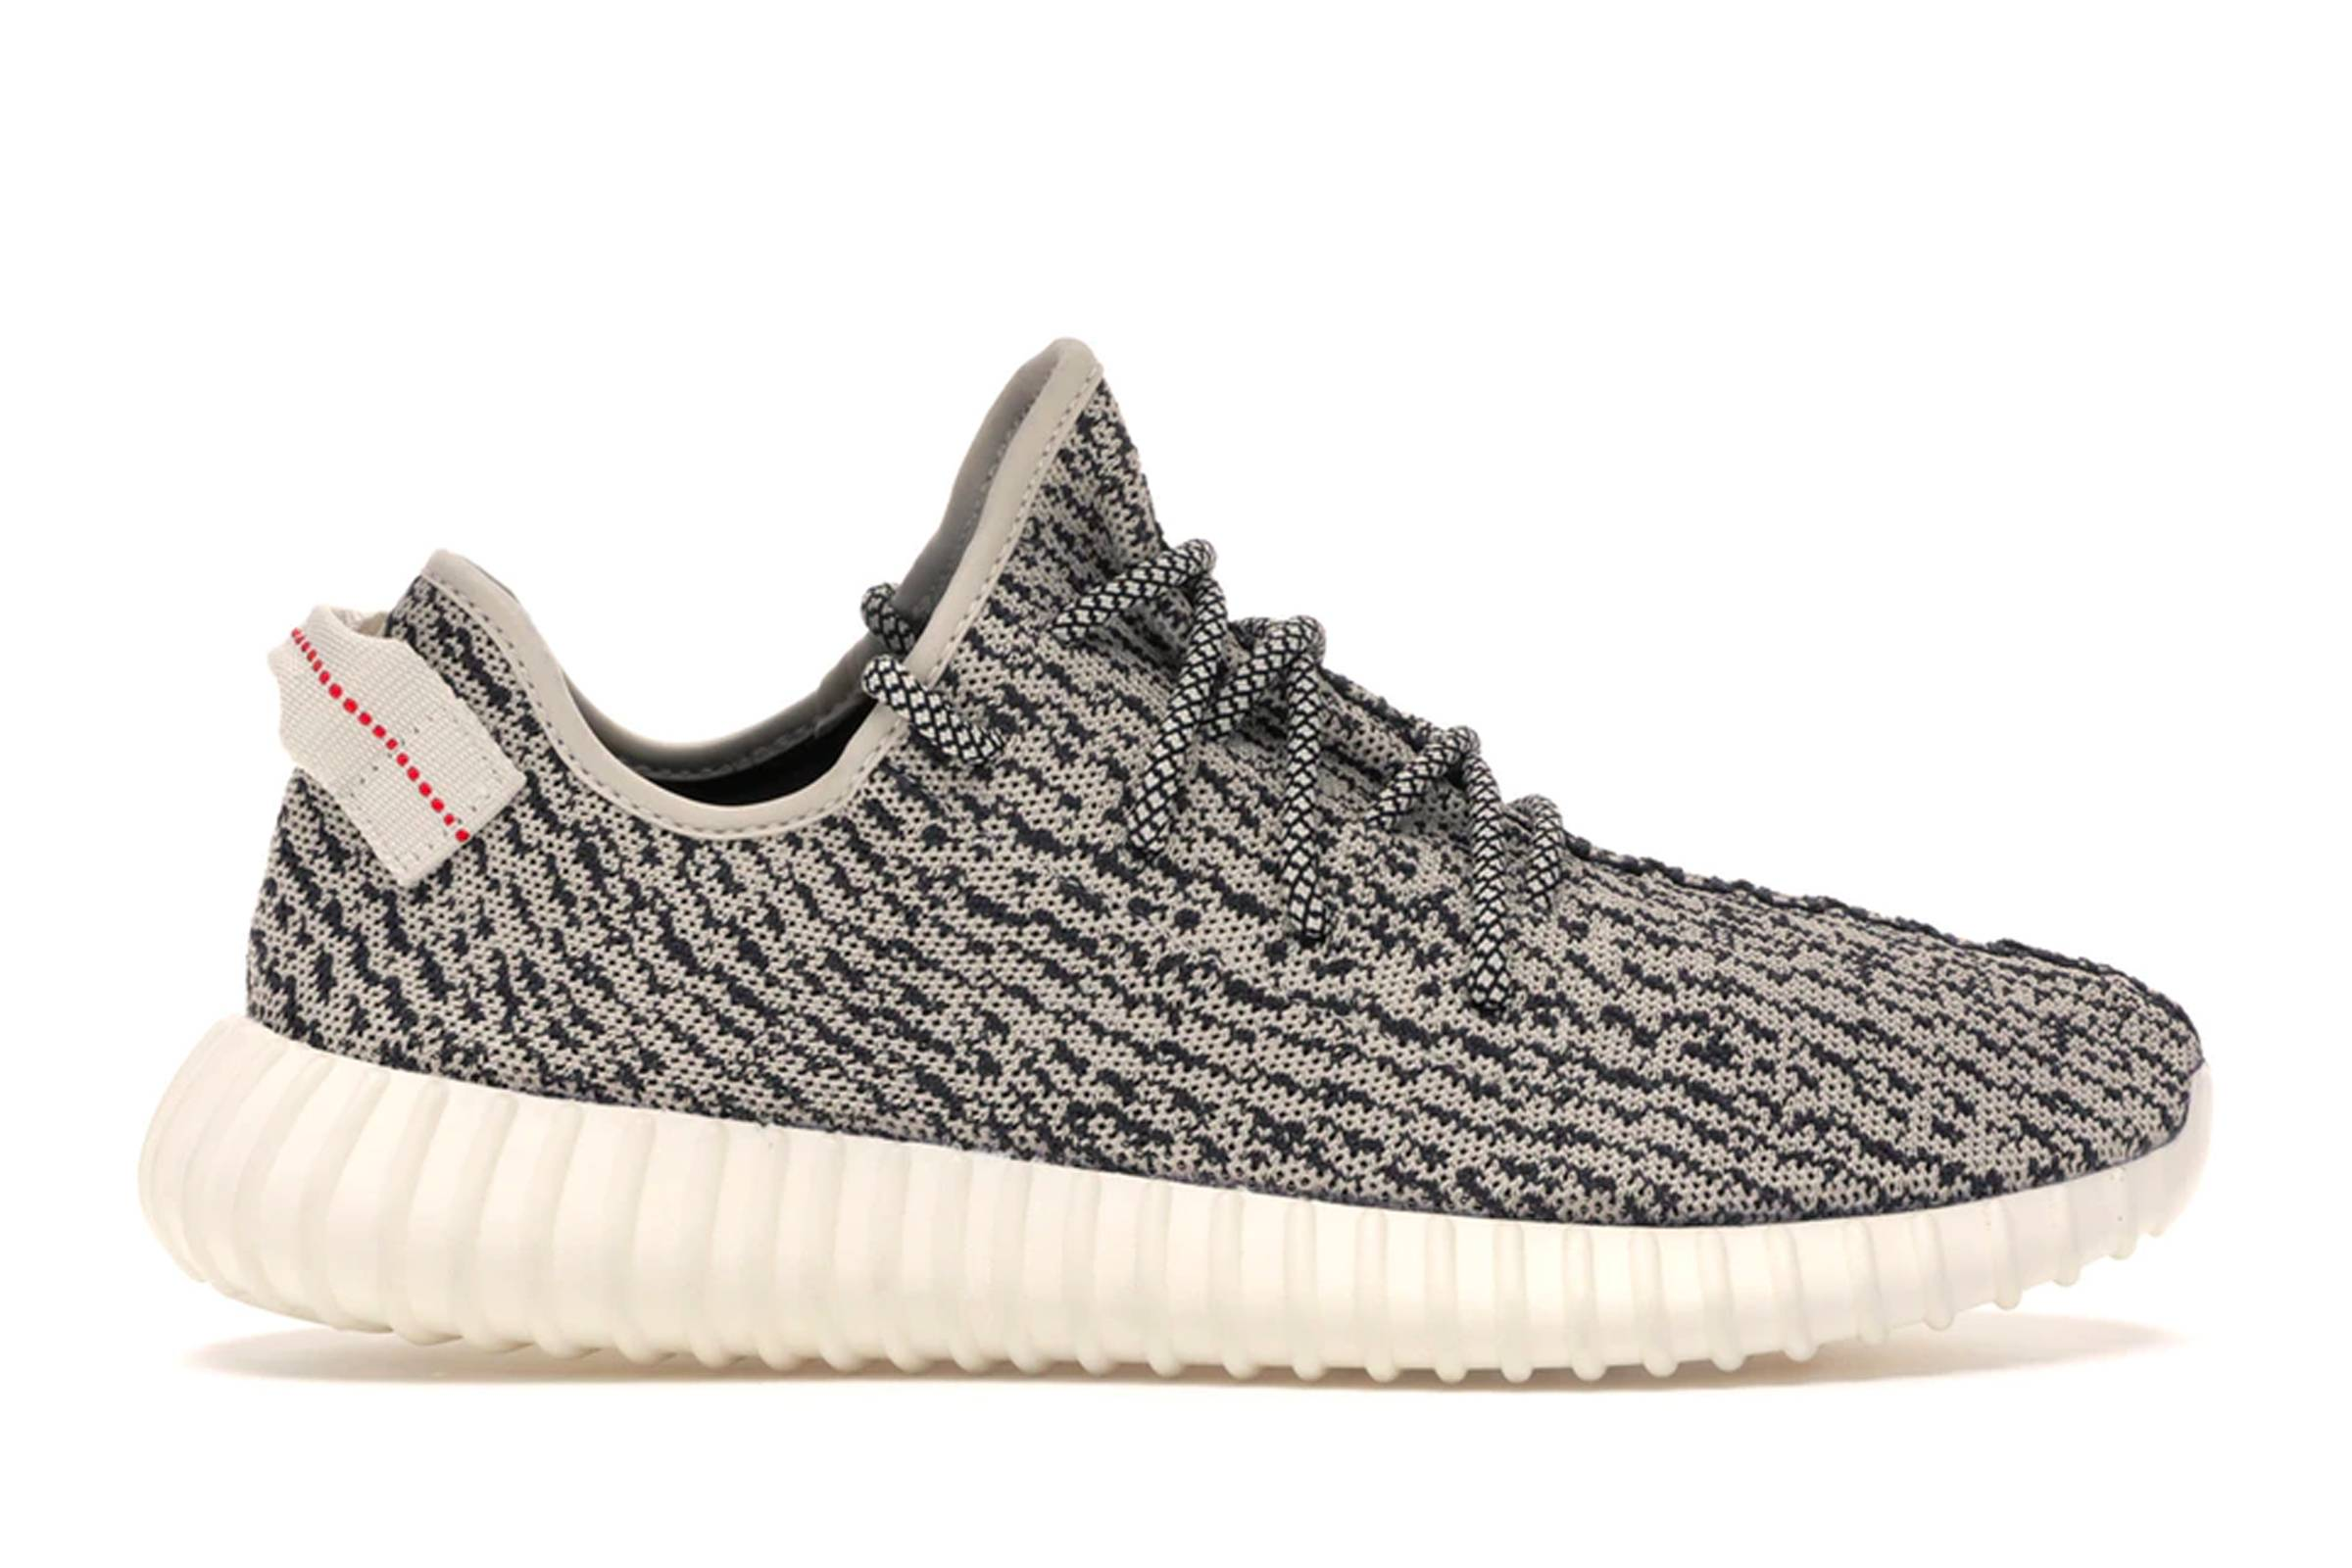 paquete Incidente, evento vehículo  Yeezy Sneaker Guide | Types of Yeezys | Grailed